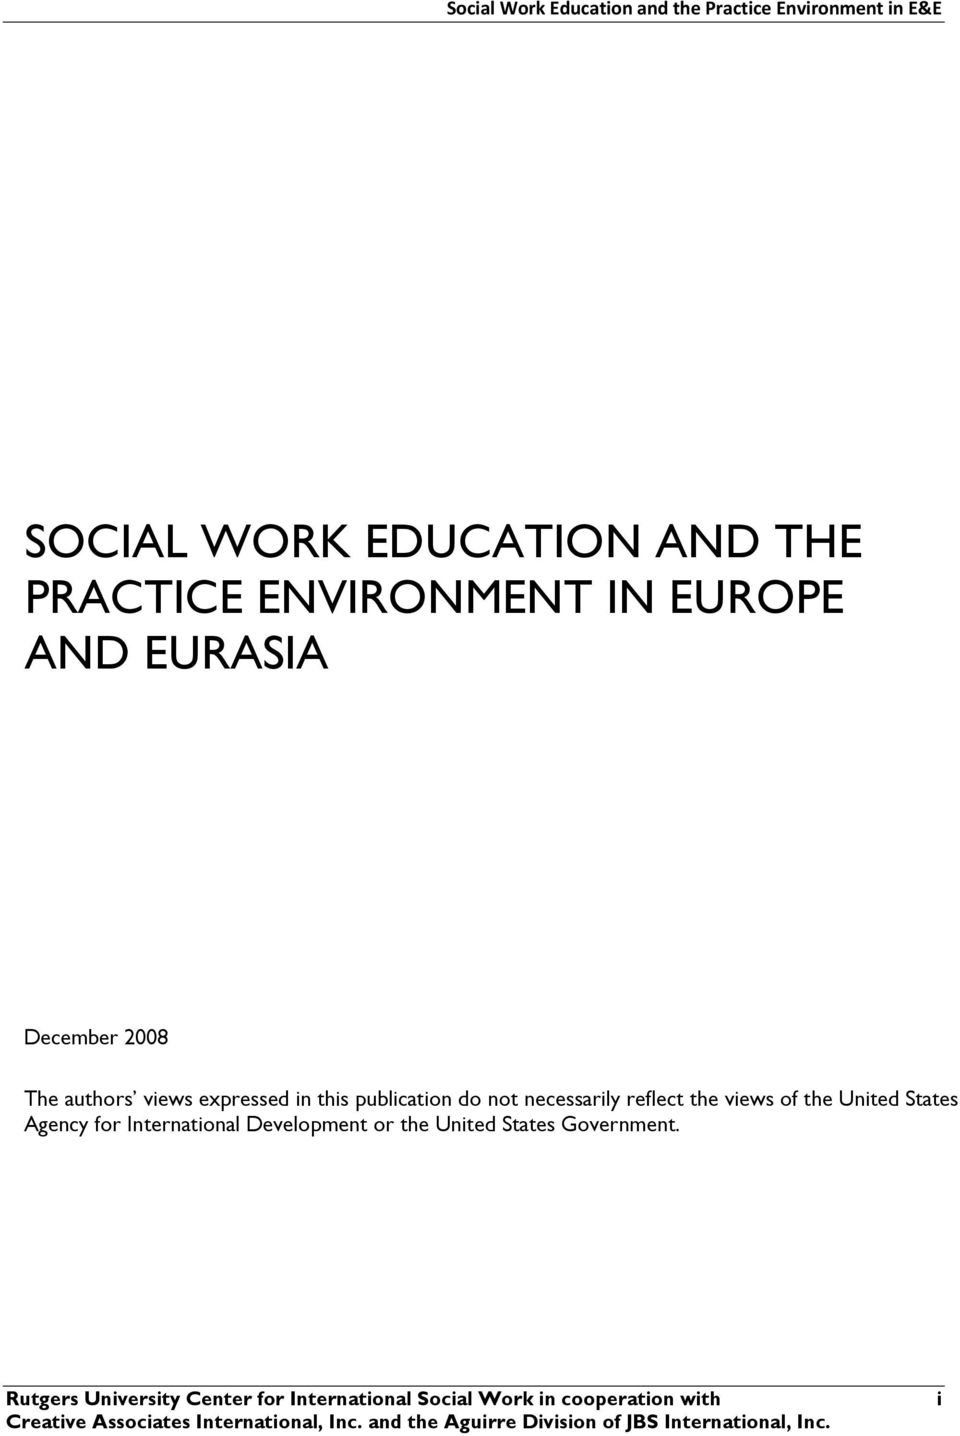 views of the United States Agency for International Development or the United States